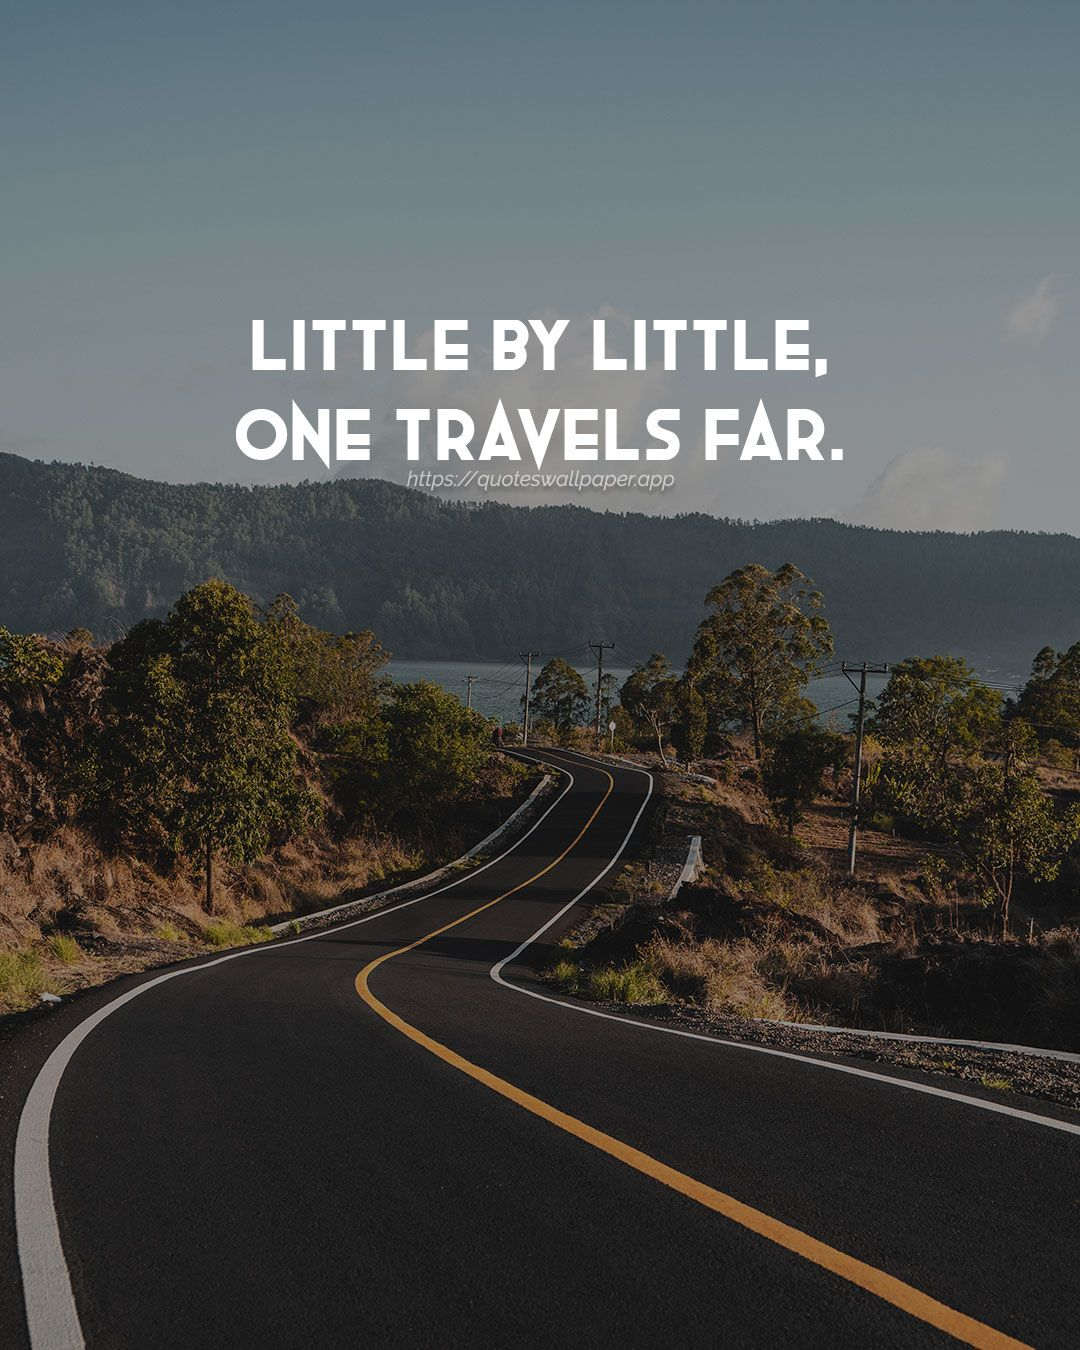 Little By Little, One Travels Far. #travel #travelquotes #quotes #quoteswallpaper